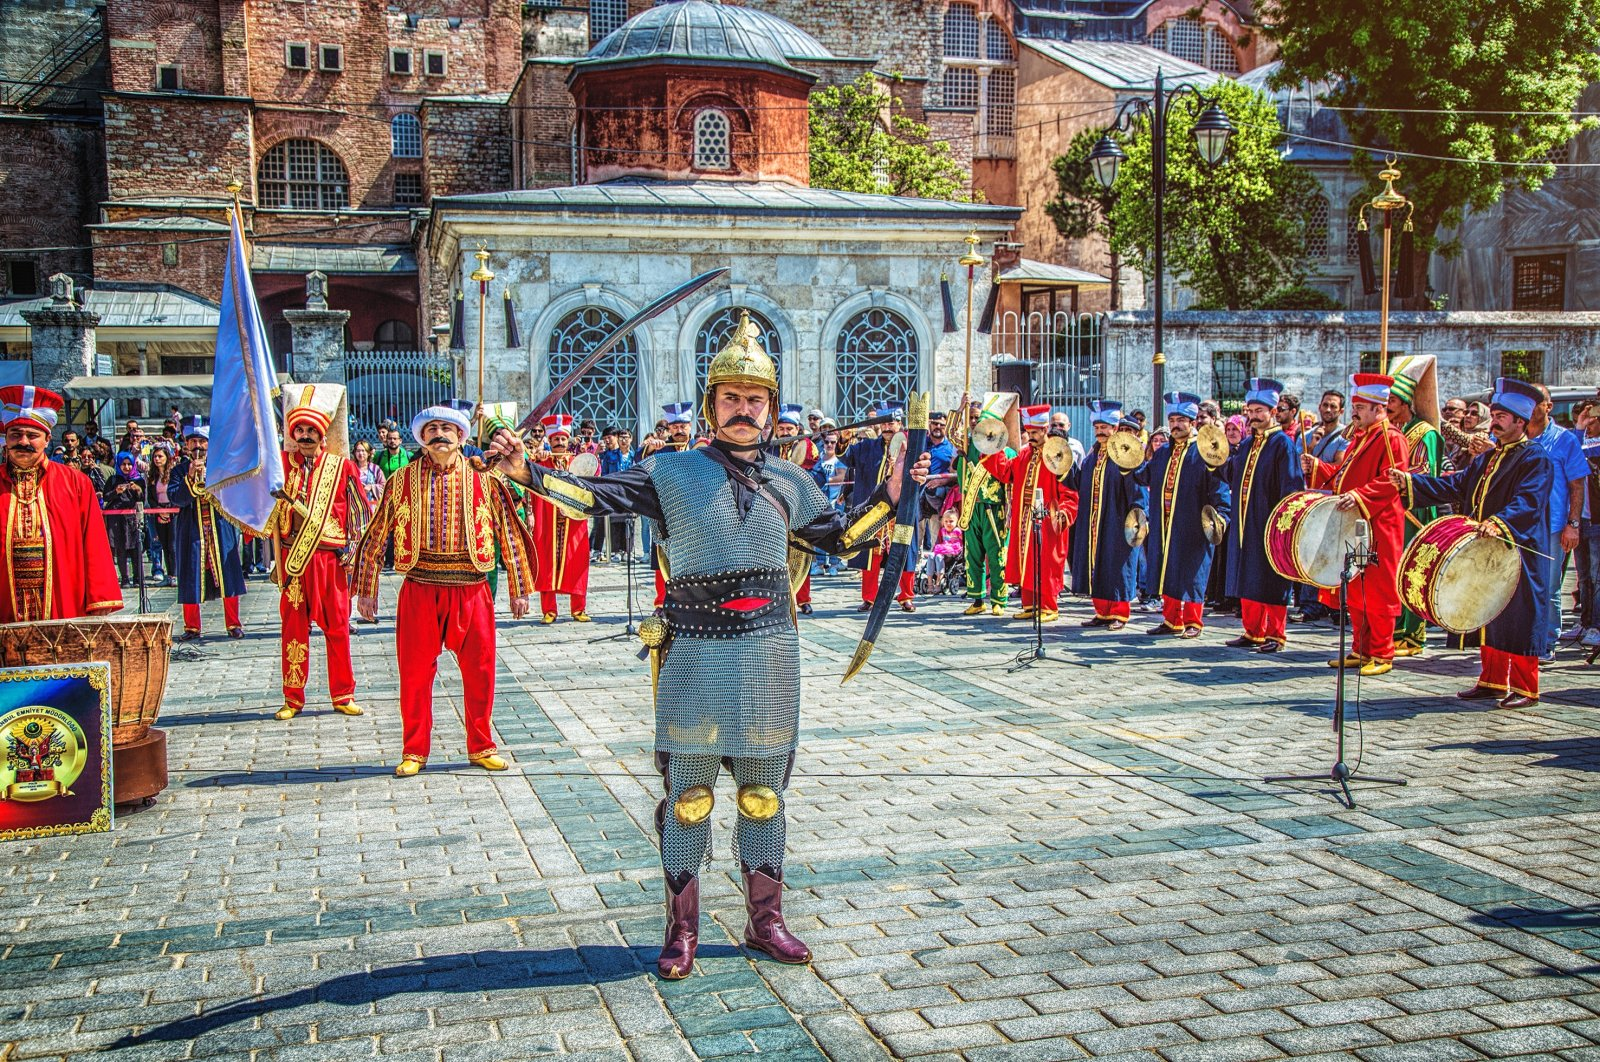 A performance of a Mehter band at Sultanahmet Square, Istanbul, Turkey, May 5, 2017. (Lepneva Irina / Shutterstock Photo)